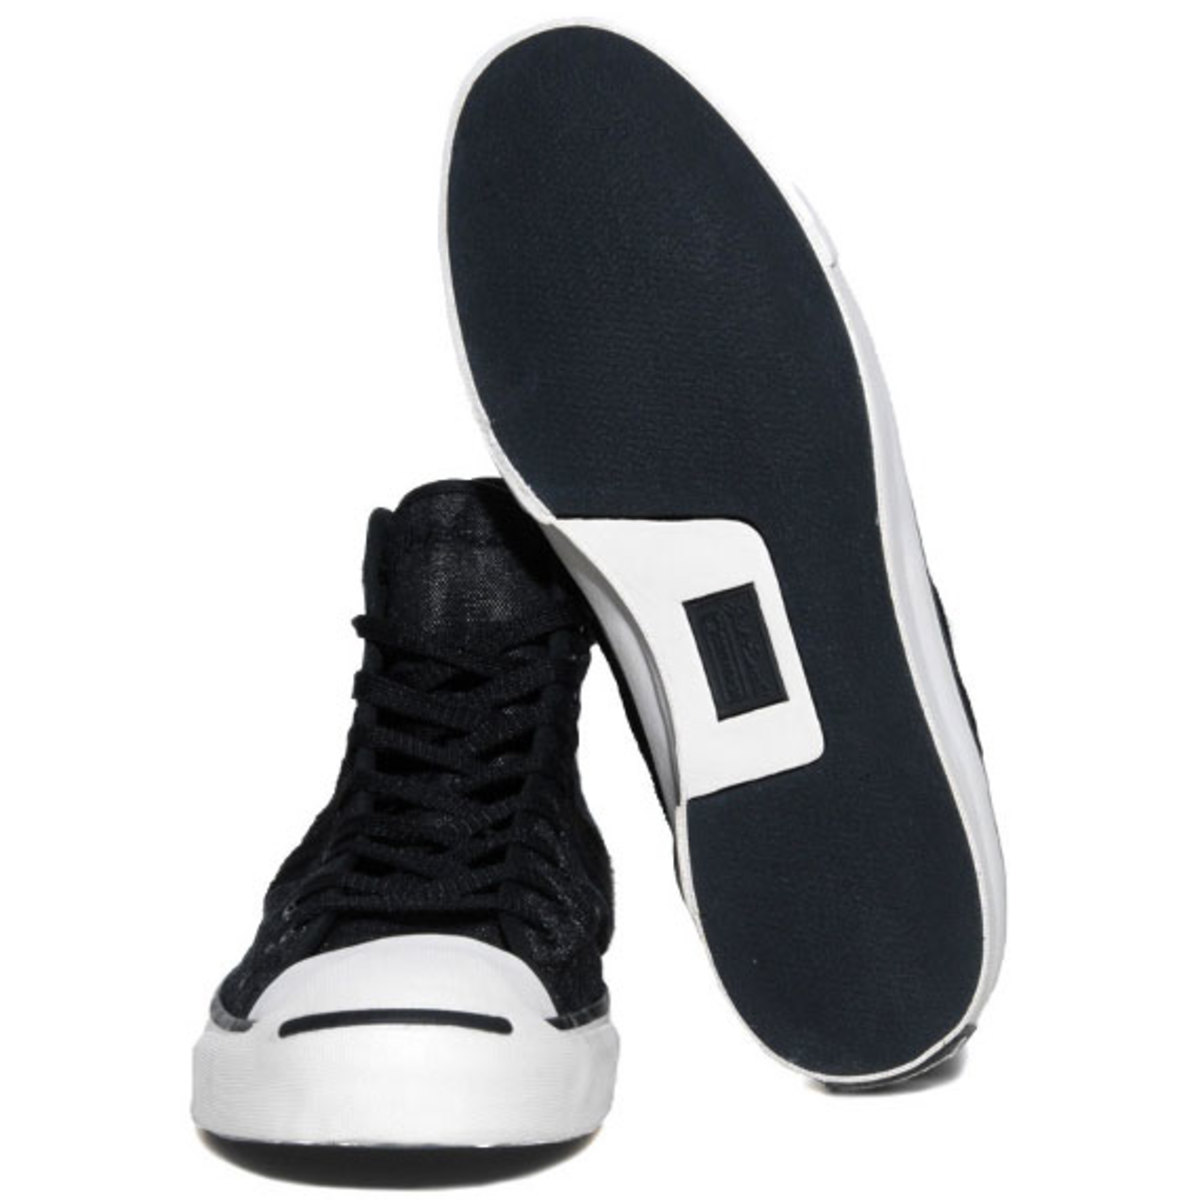 converse-jack-purcell-johnny-09